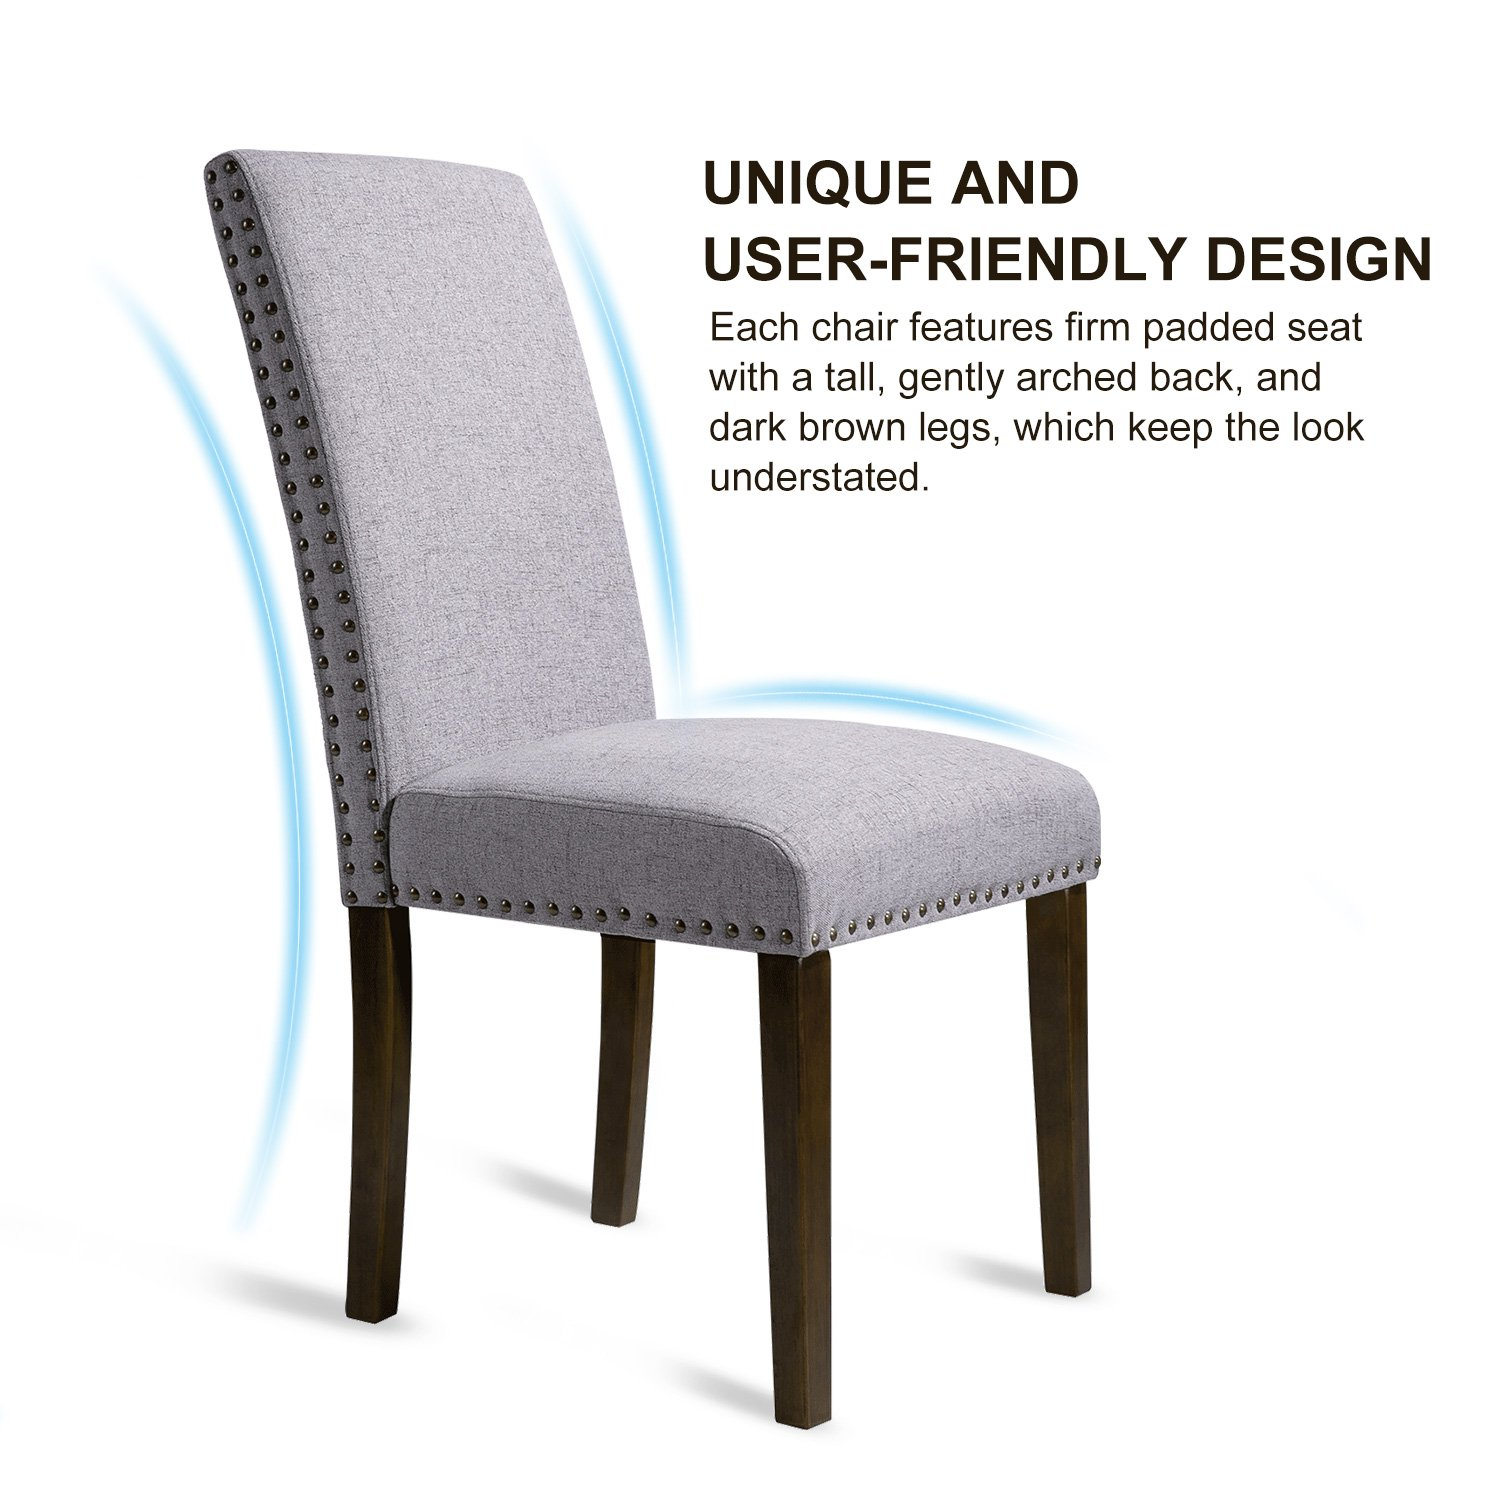 Merax PP036415 Set of 2 Fabric Dining Chairs with Copper Nails and Solid Wood Legs by Merax (Image #2)